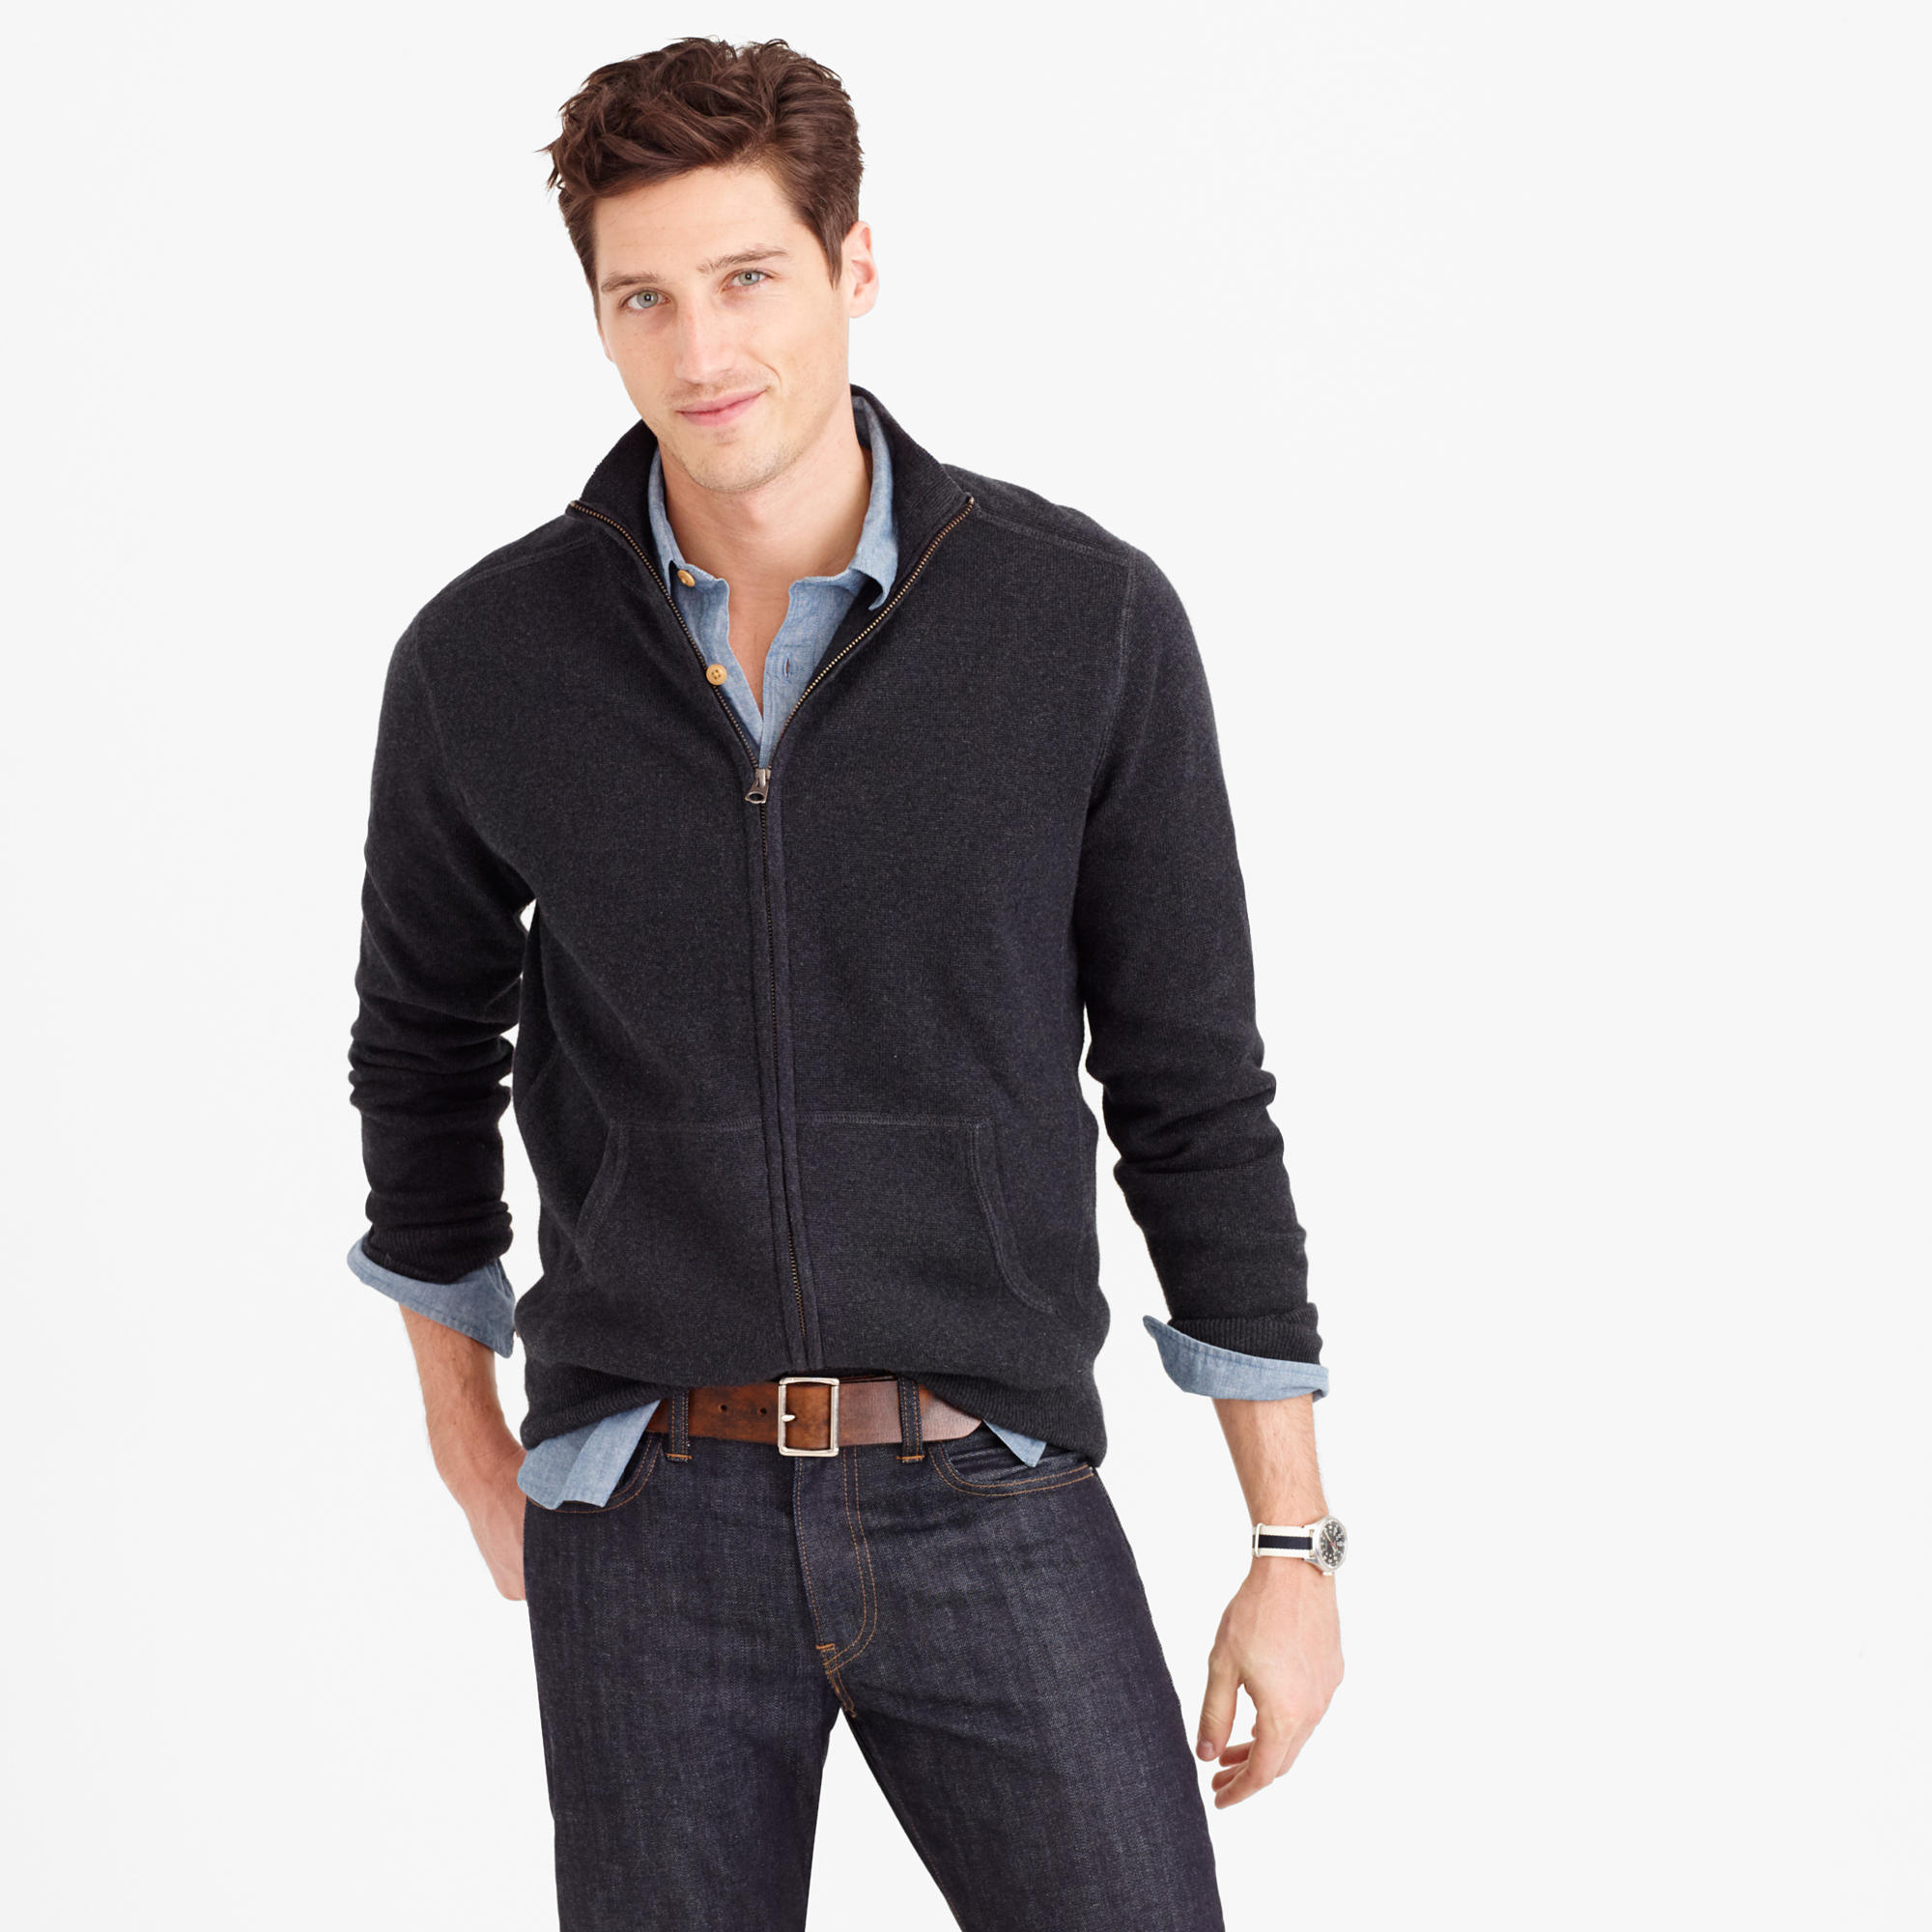 Cotton-Cashmere Zip Sweater-Jacket : Men&39s Sweaters | J.Crew